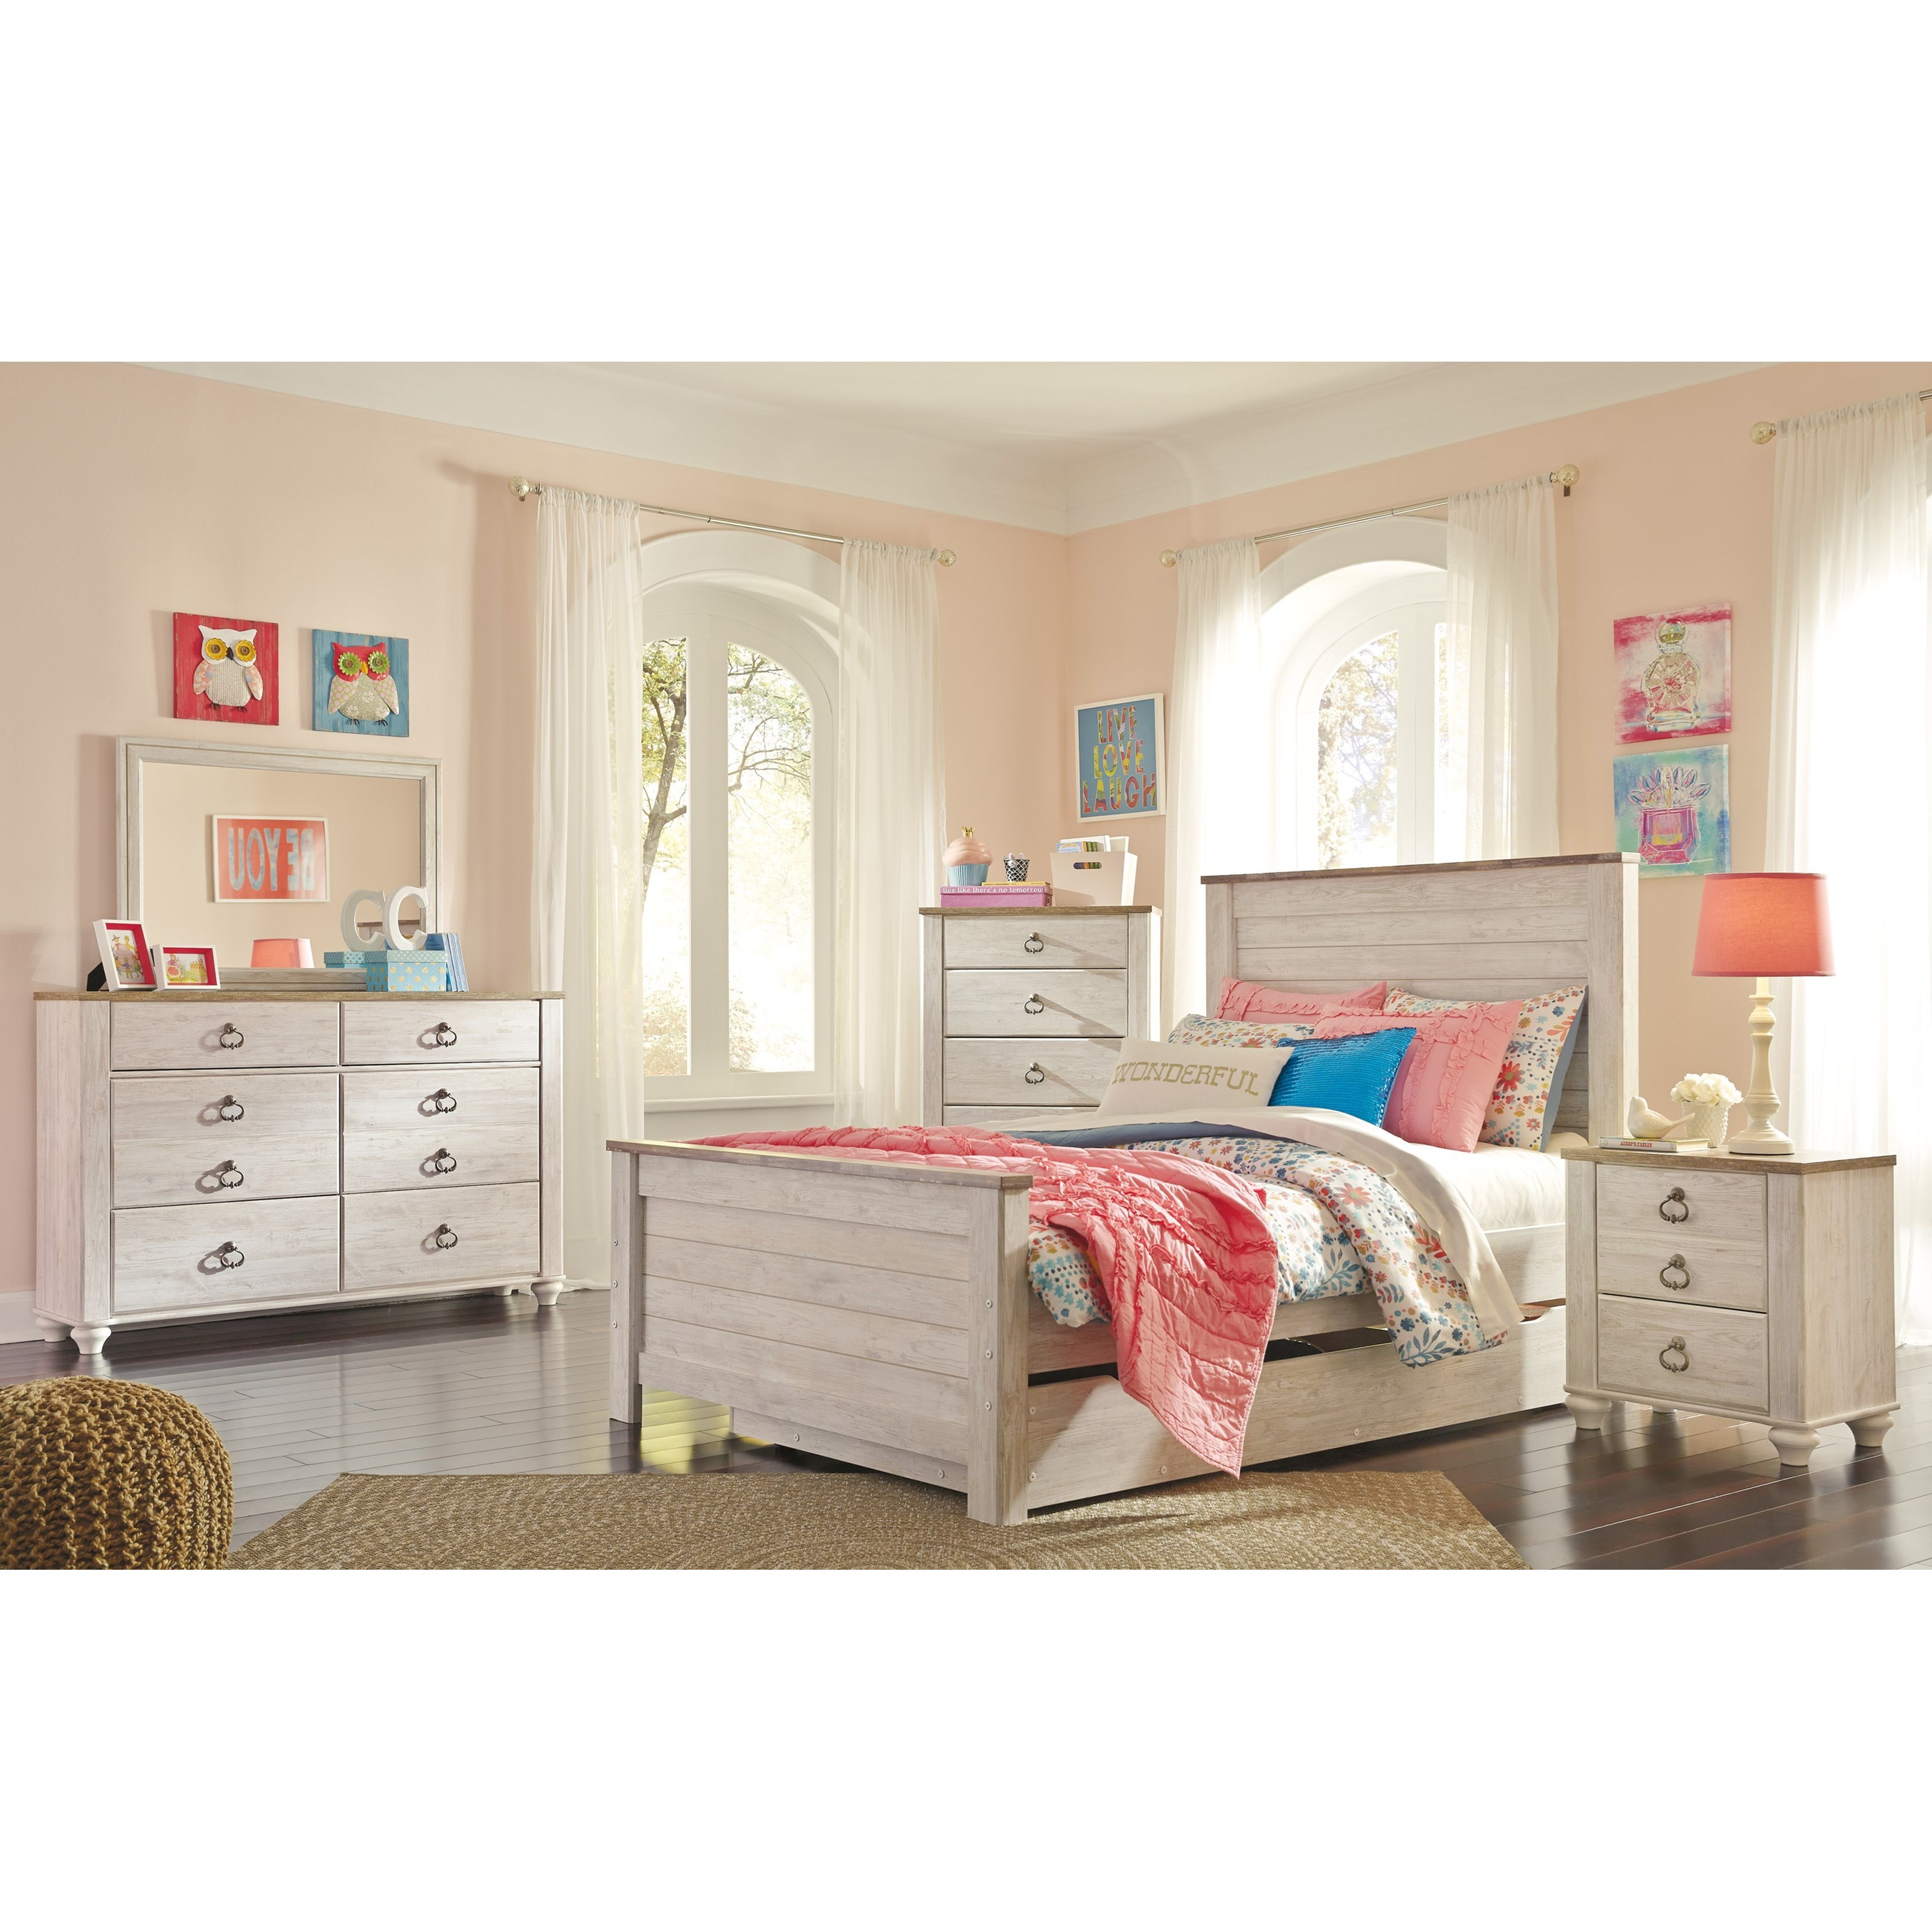 Willowton Full Bedroom Group by Signature Design by Ashley at Beds N Stuff